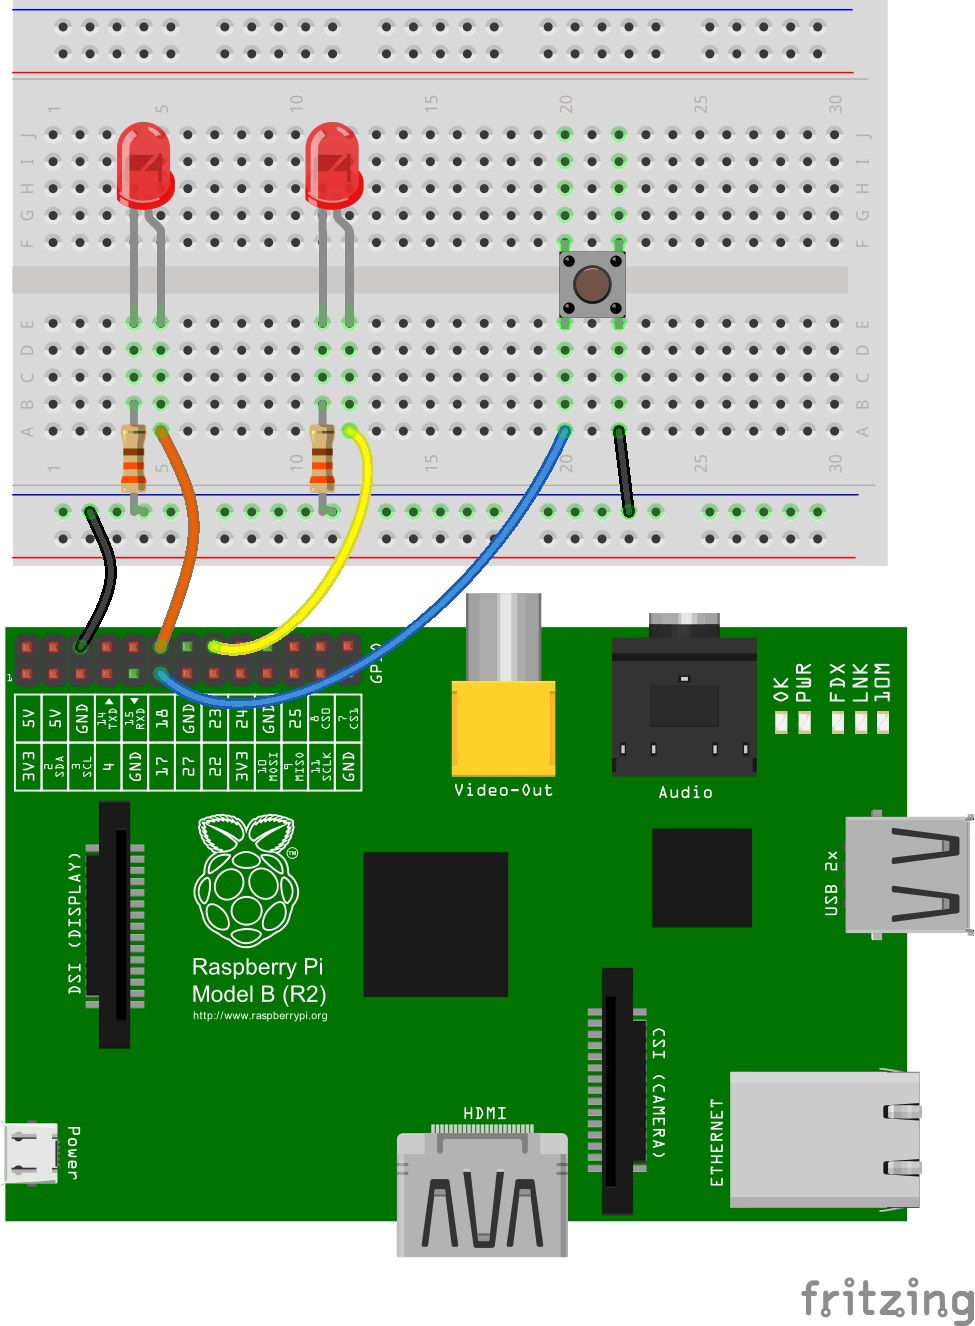 Raspberry Gpio Filedimmer Wiring Diagramjpg Wikimedia Commons Alt Text Connections